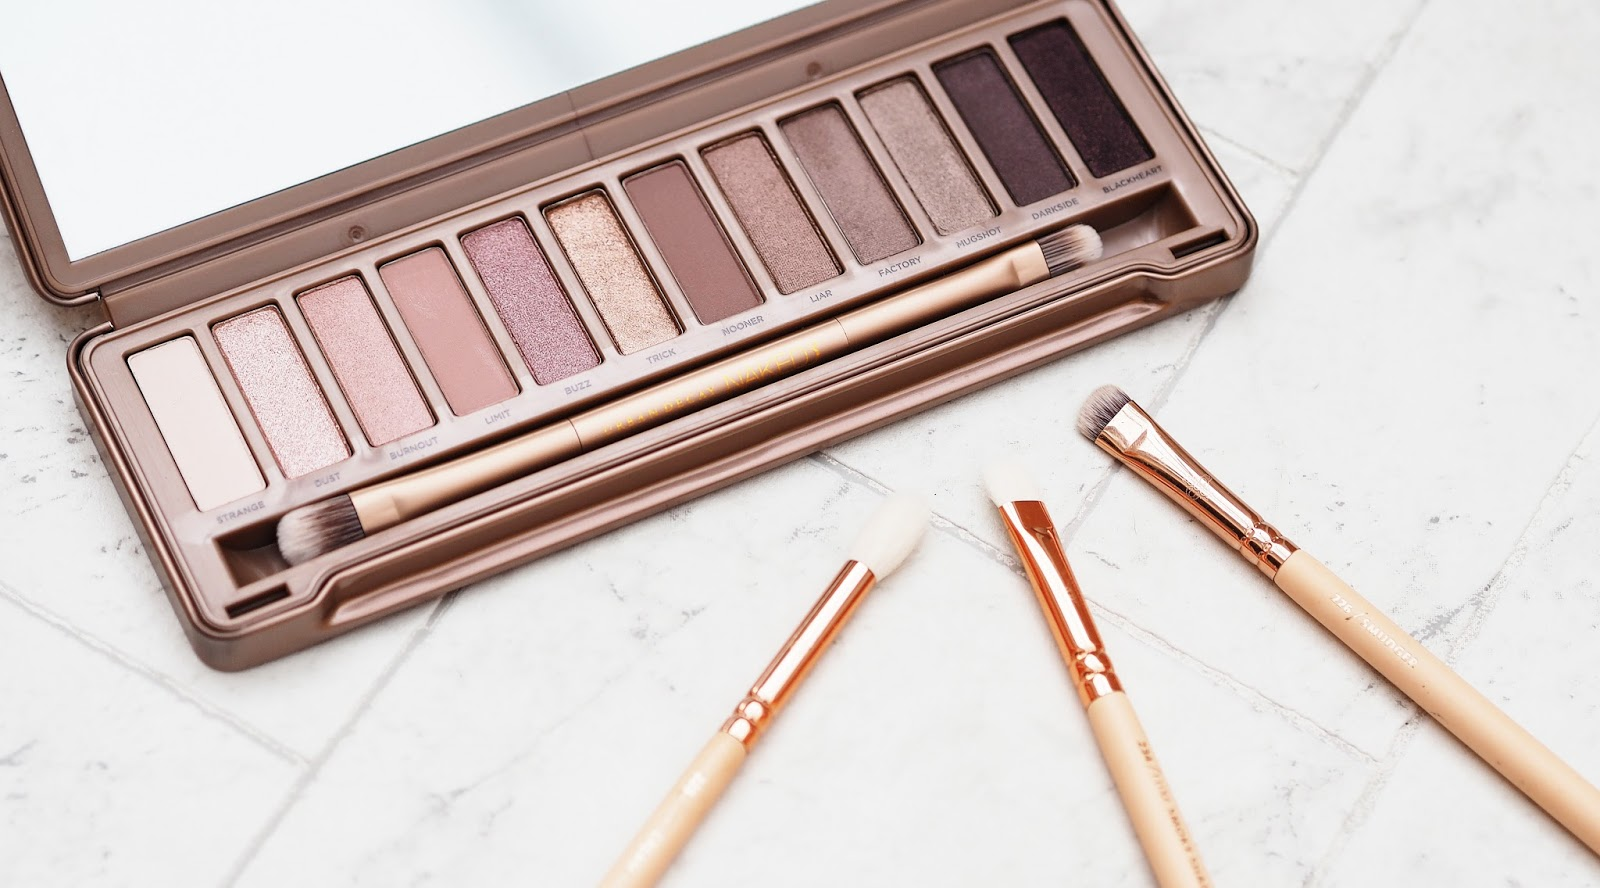 Urban Decay Naked 3 Eyeshadow, Debenhams